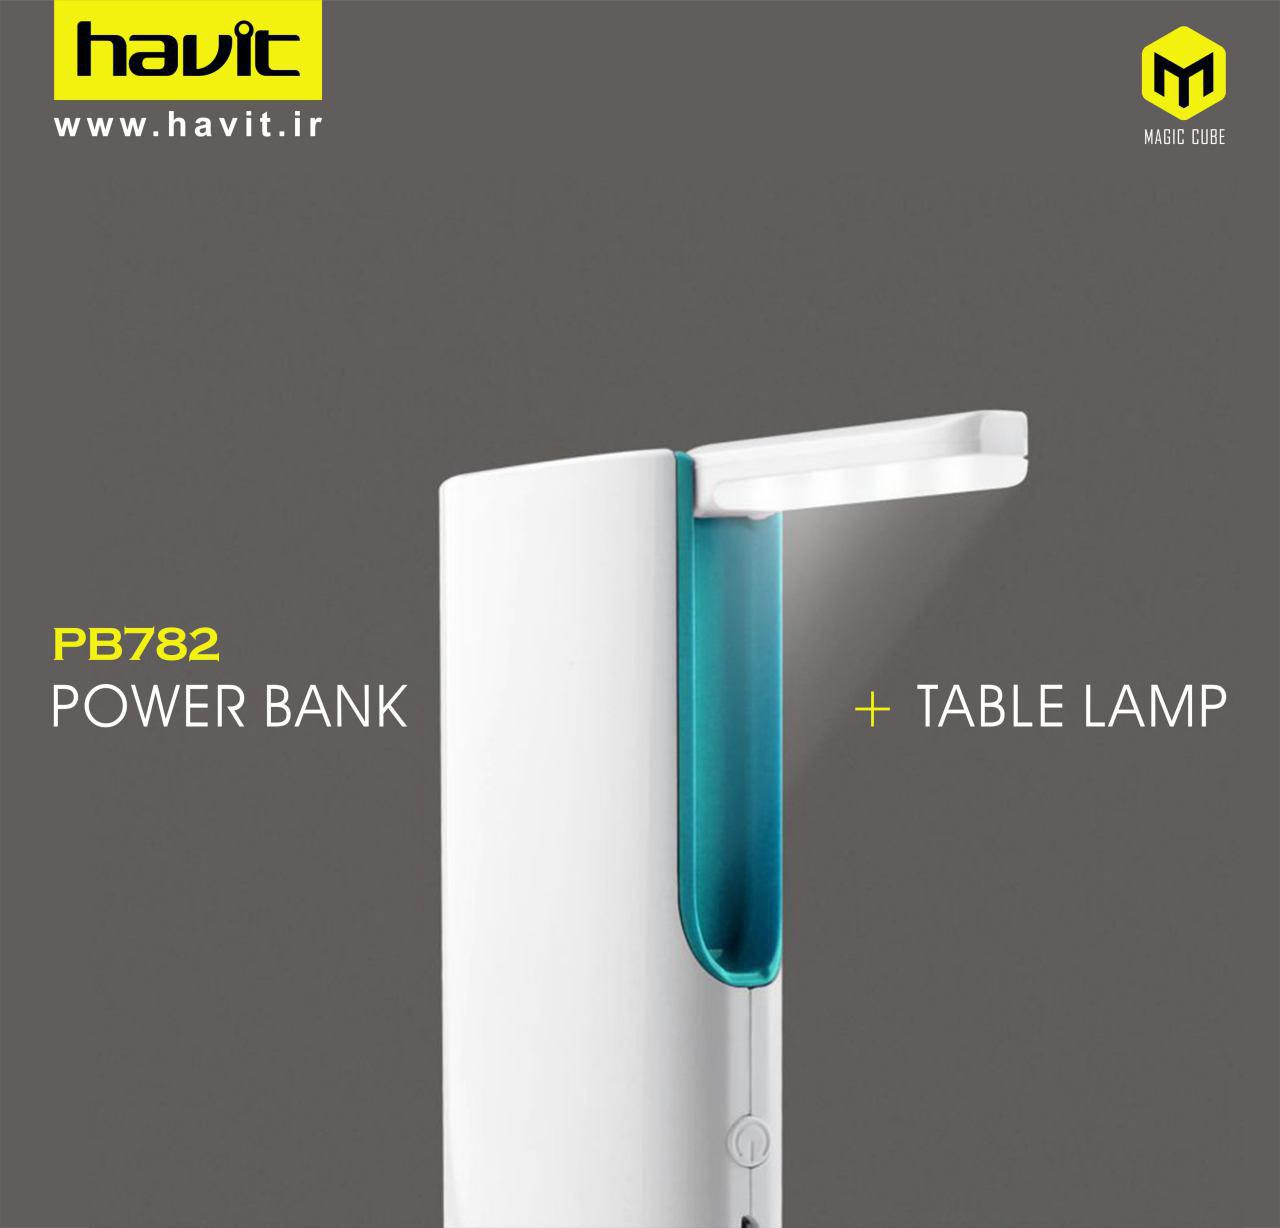 Havit PB782 PowerBank